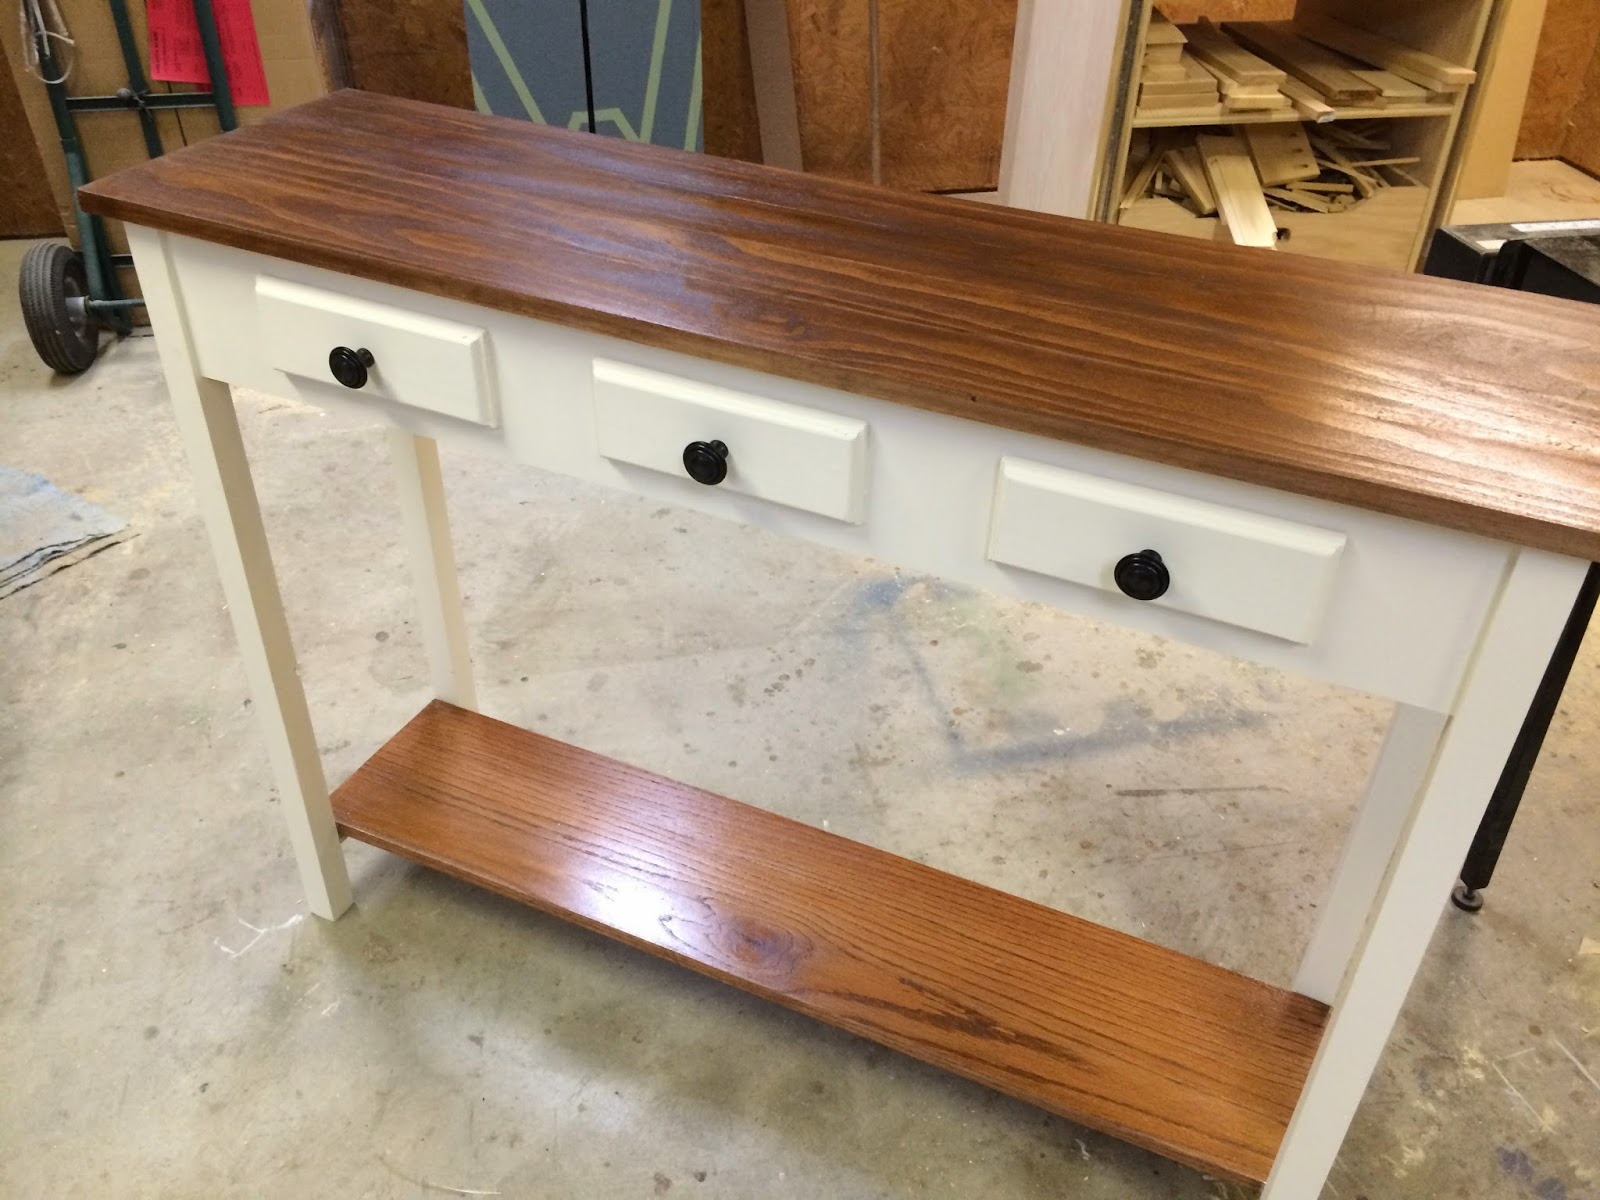 Permalink to build end table with drawer